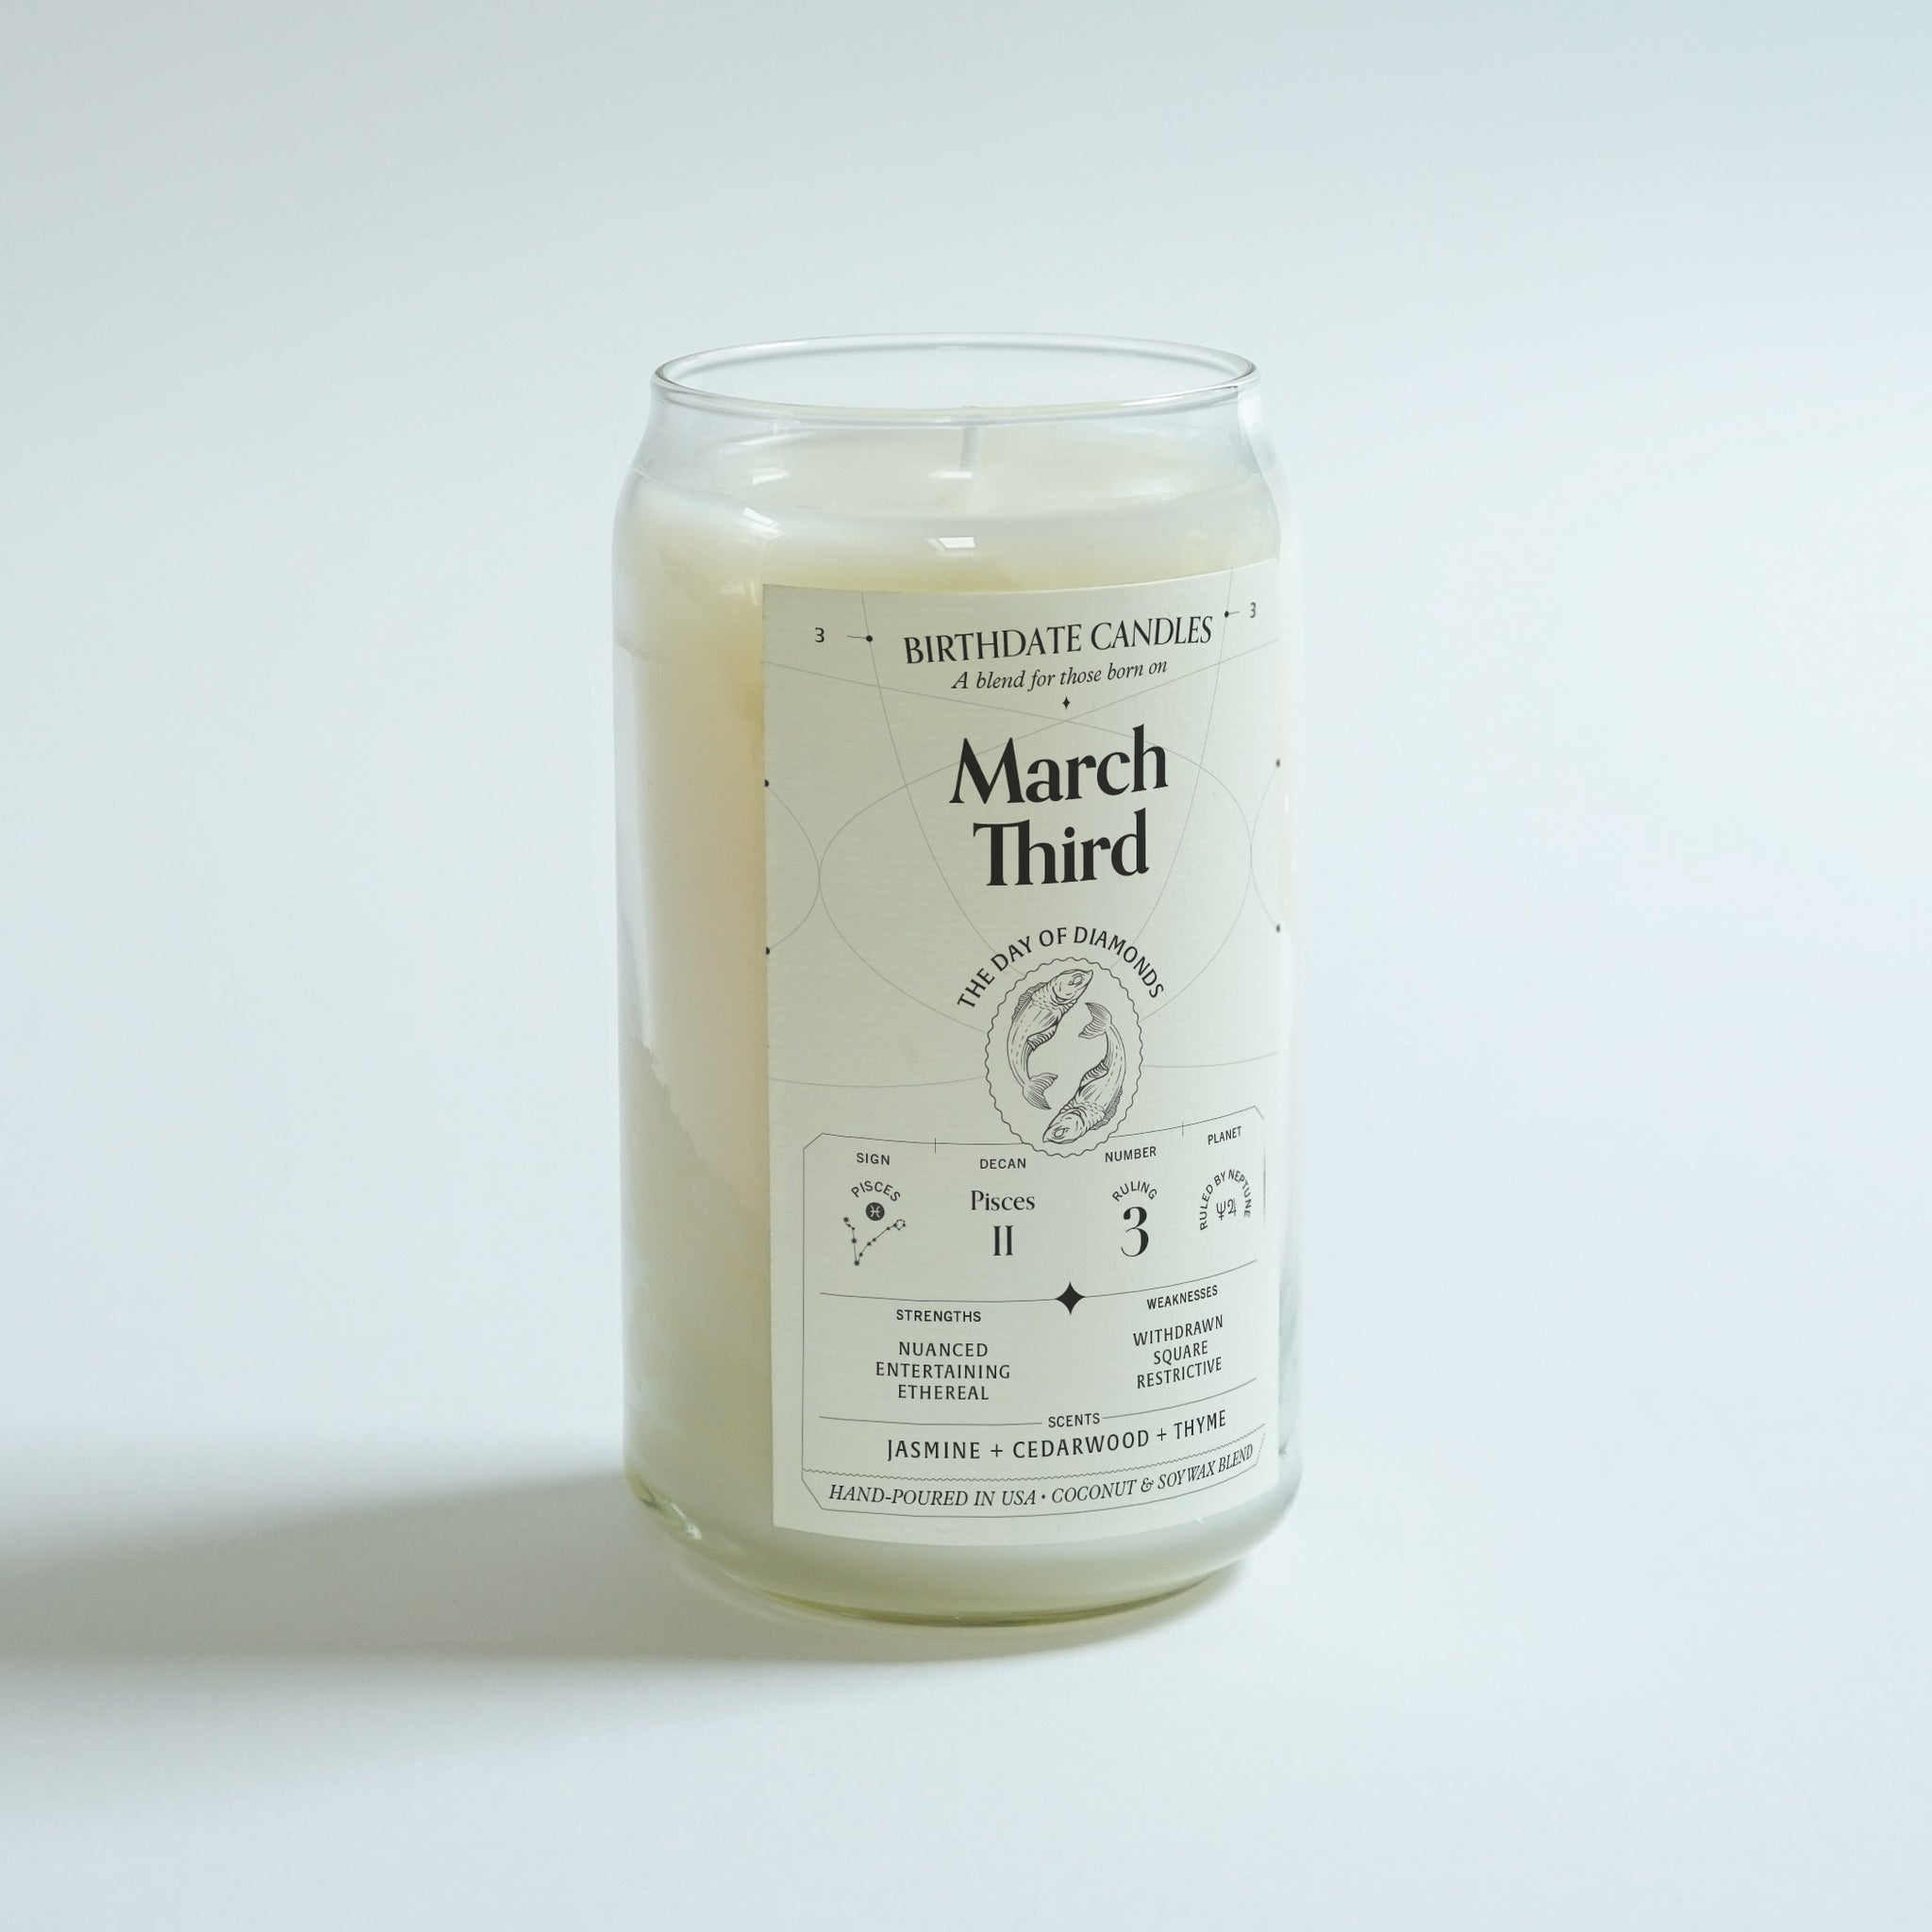 The March Third Candle